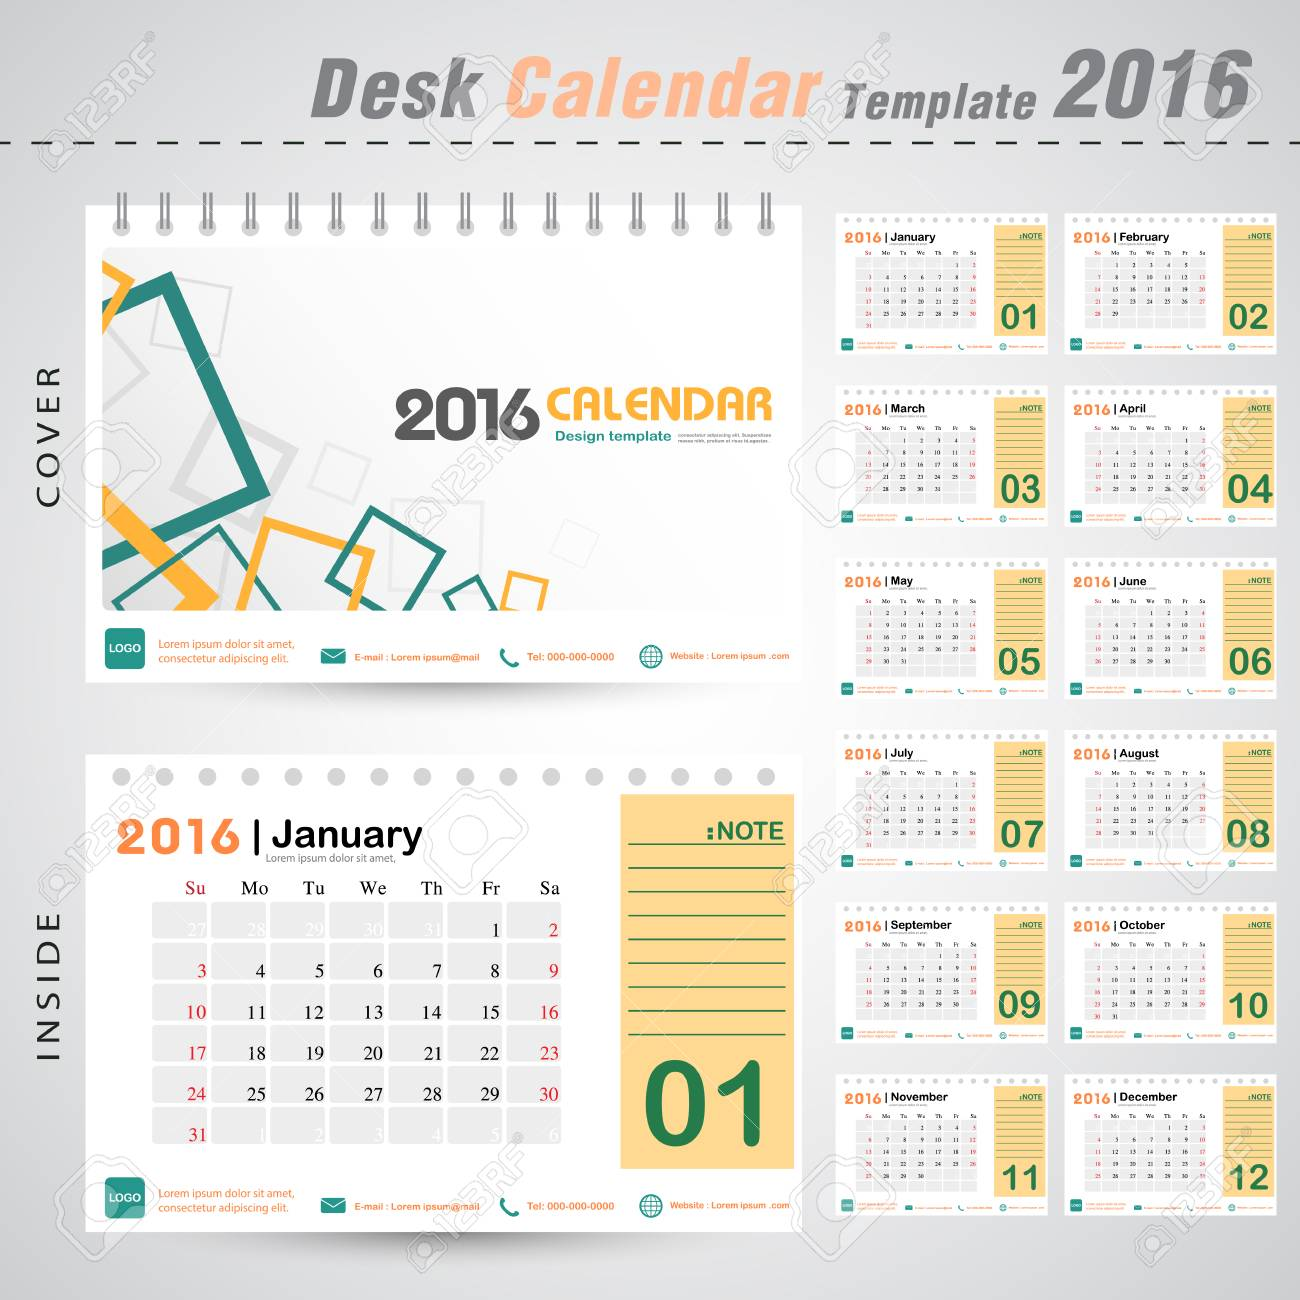 Office Calendar 2016 : Desk calendar vector modern square design cover template